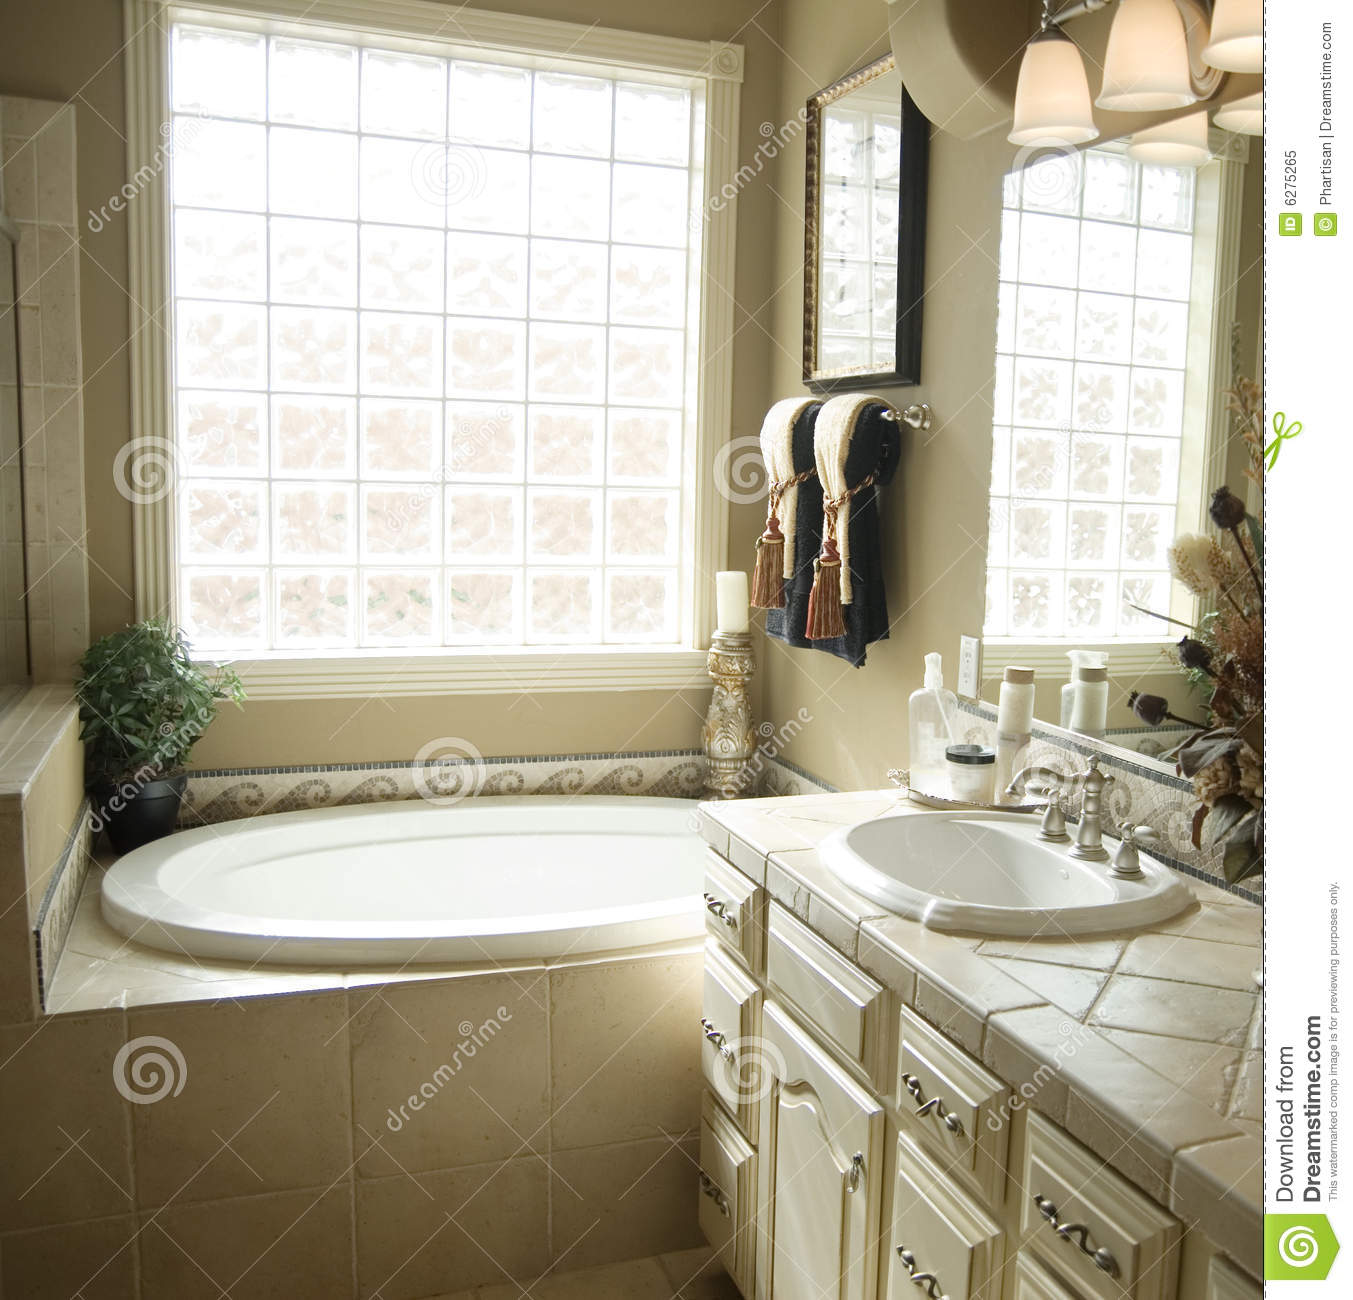 Beautiful bathroom interior design stock image image 6275265 - Interior bathroom design ...